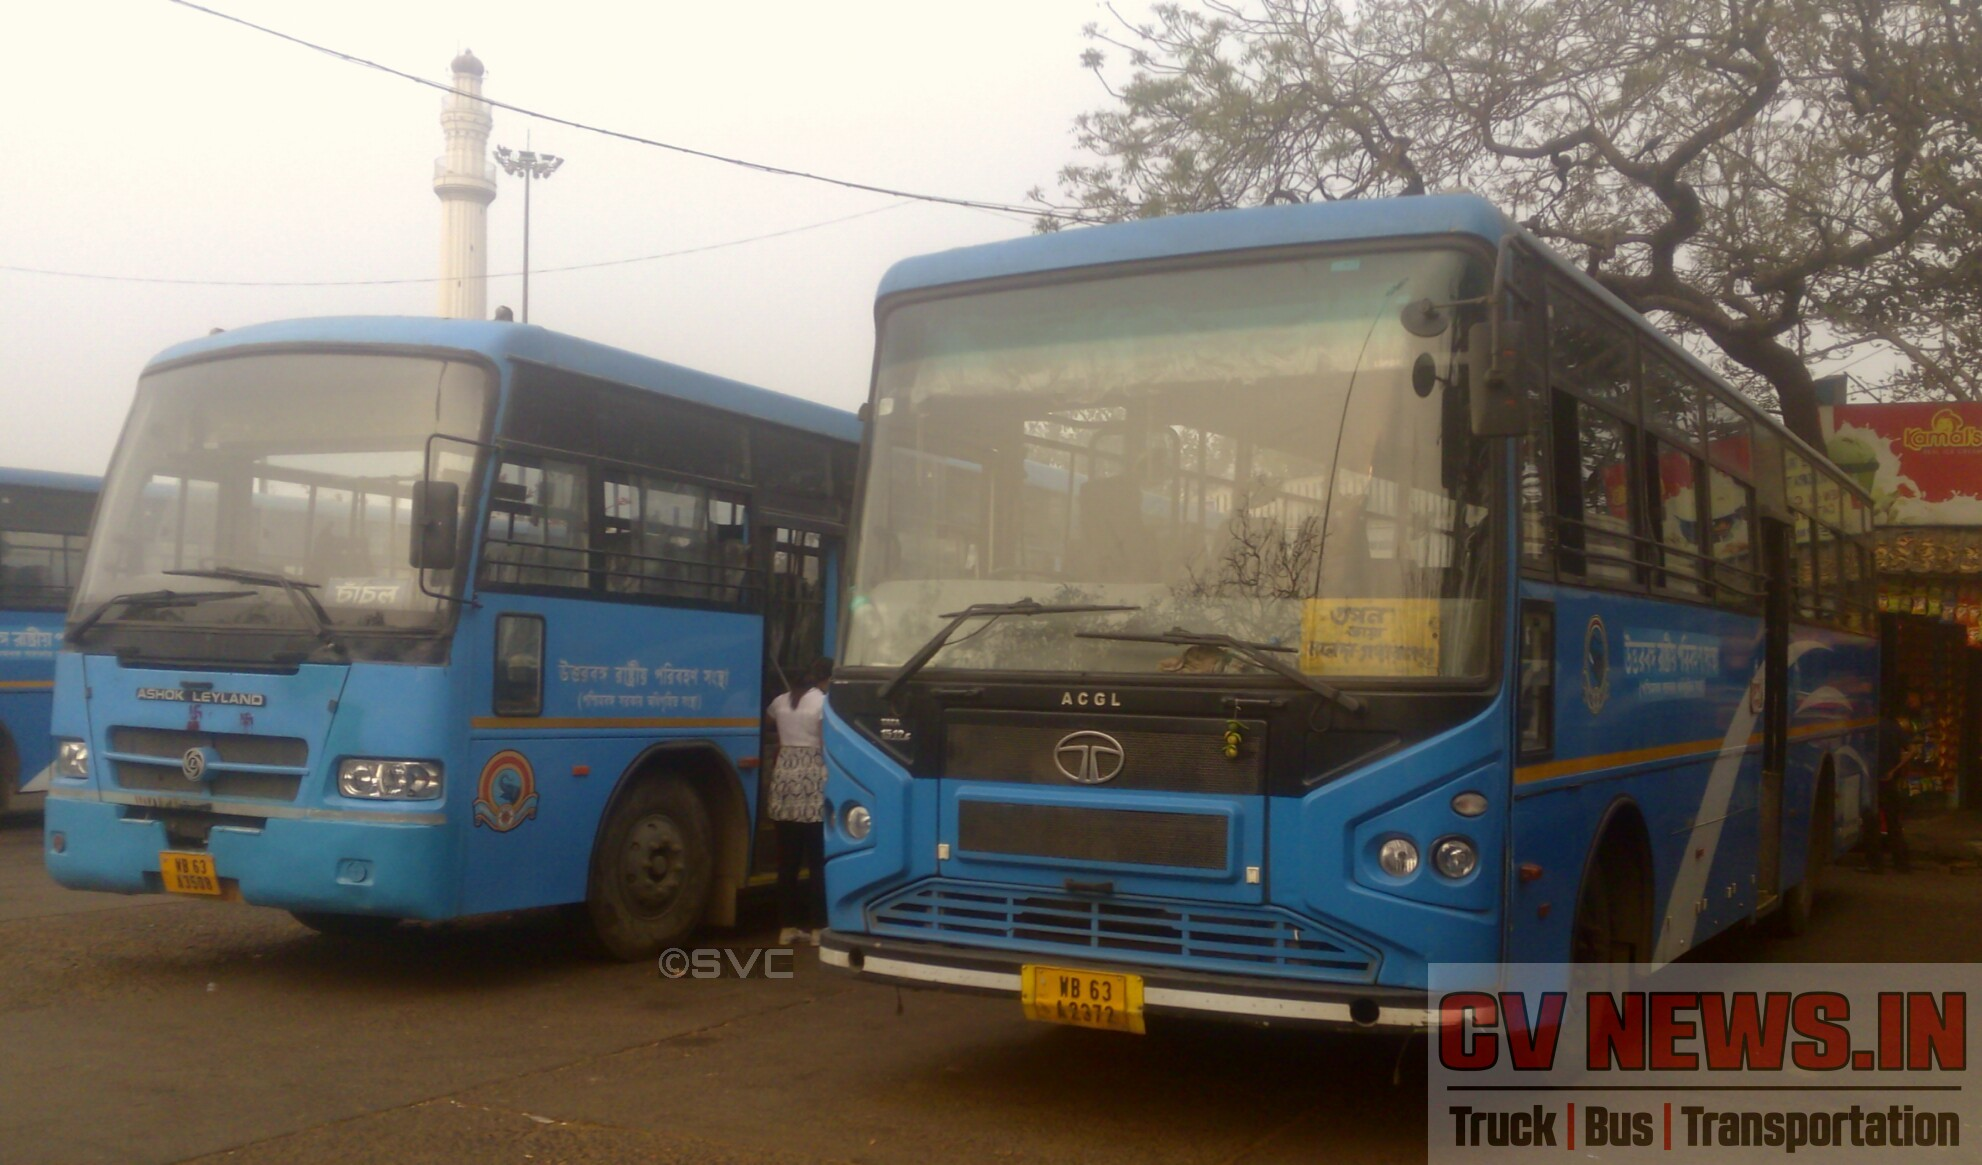 NBSTC Irizar TVS built bus on Ashok Leyland Viking chassis and ACGL built bus on Tata 1512c chassis